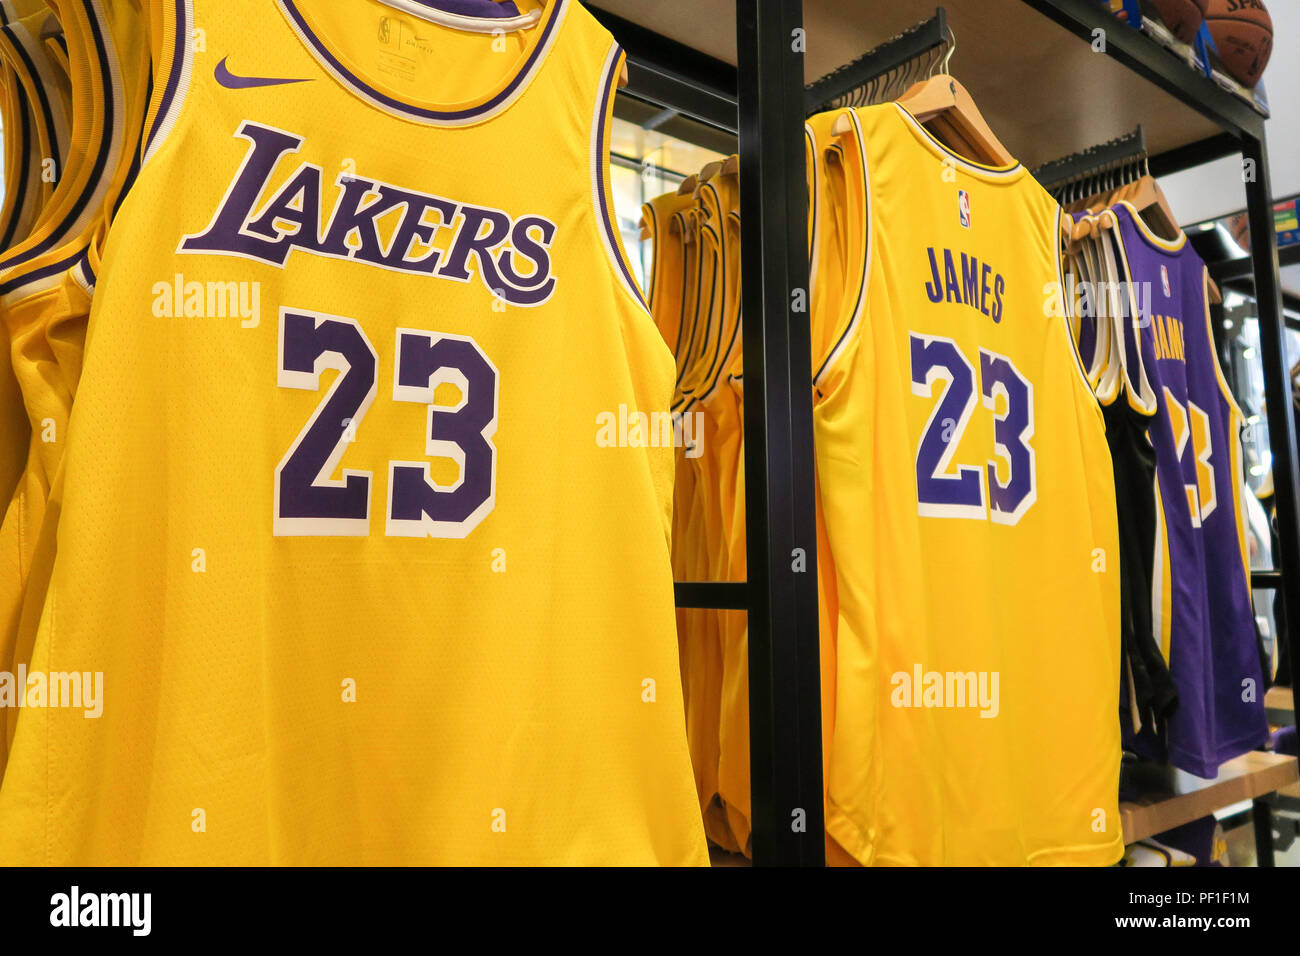 premium selection 1e4e4 ff112 Lakers Logo Stock Photos & Lakers Logo Stock Images - Alamy